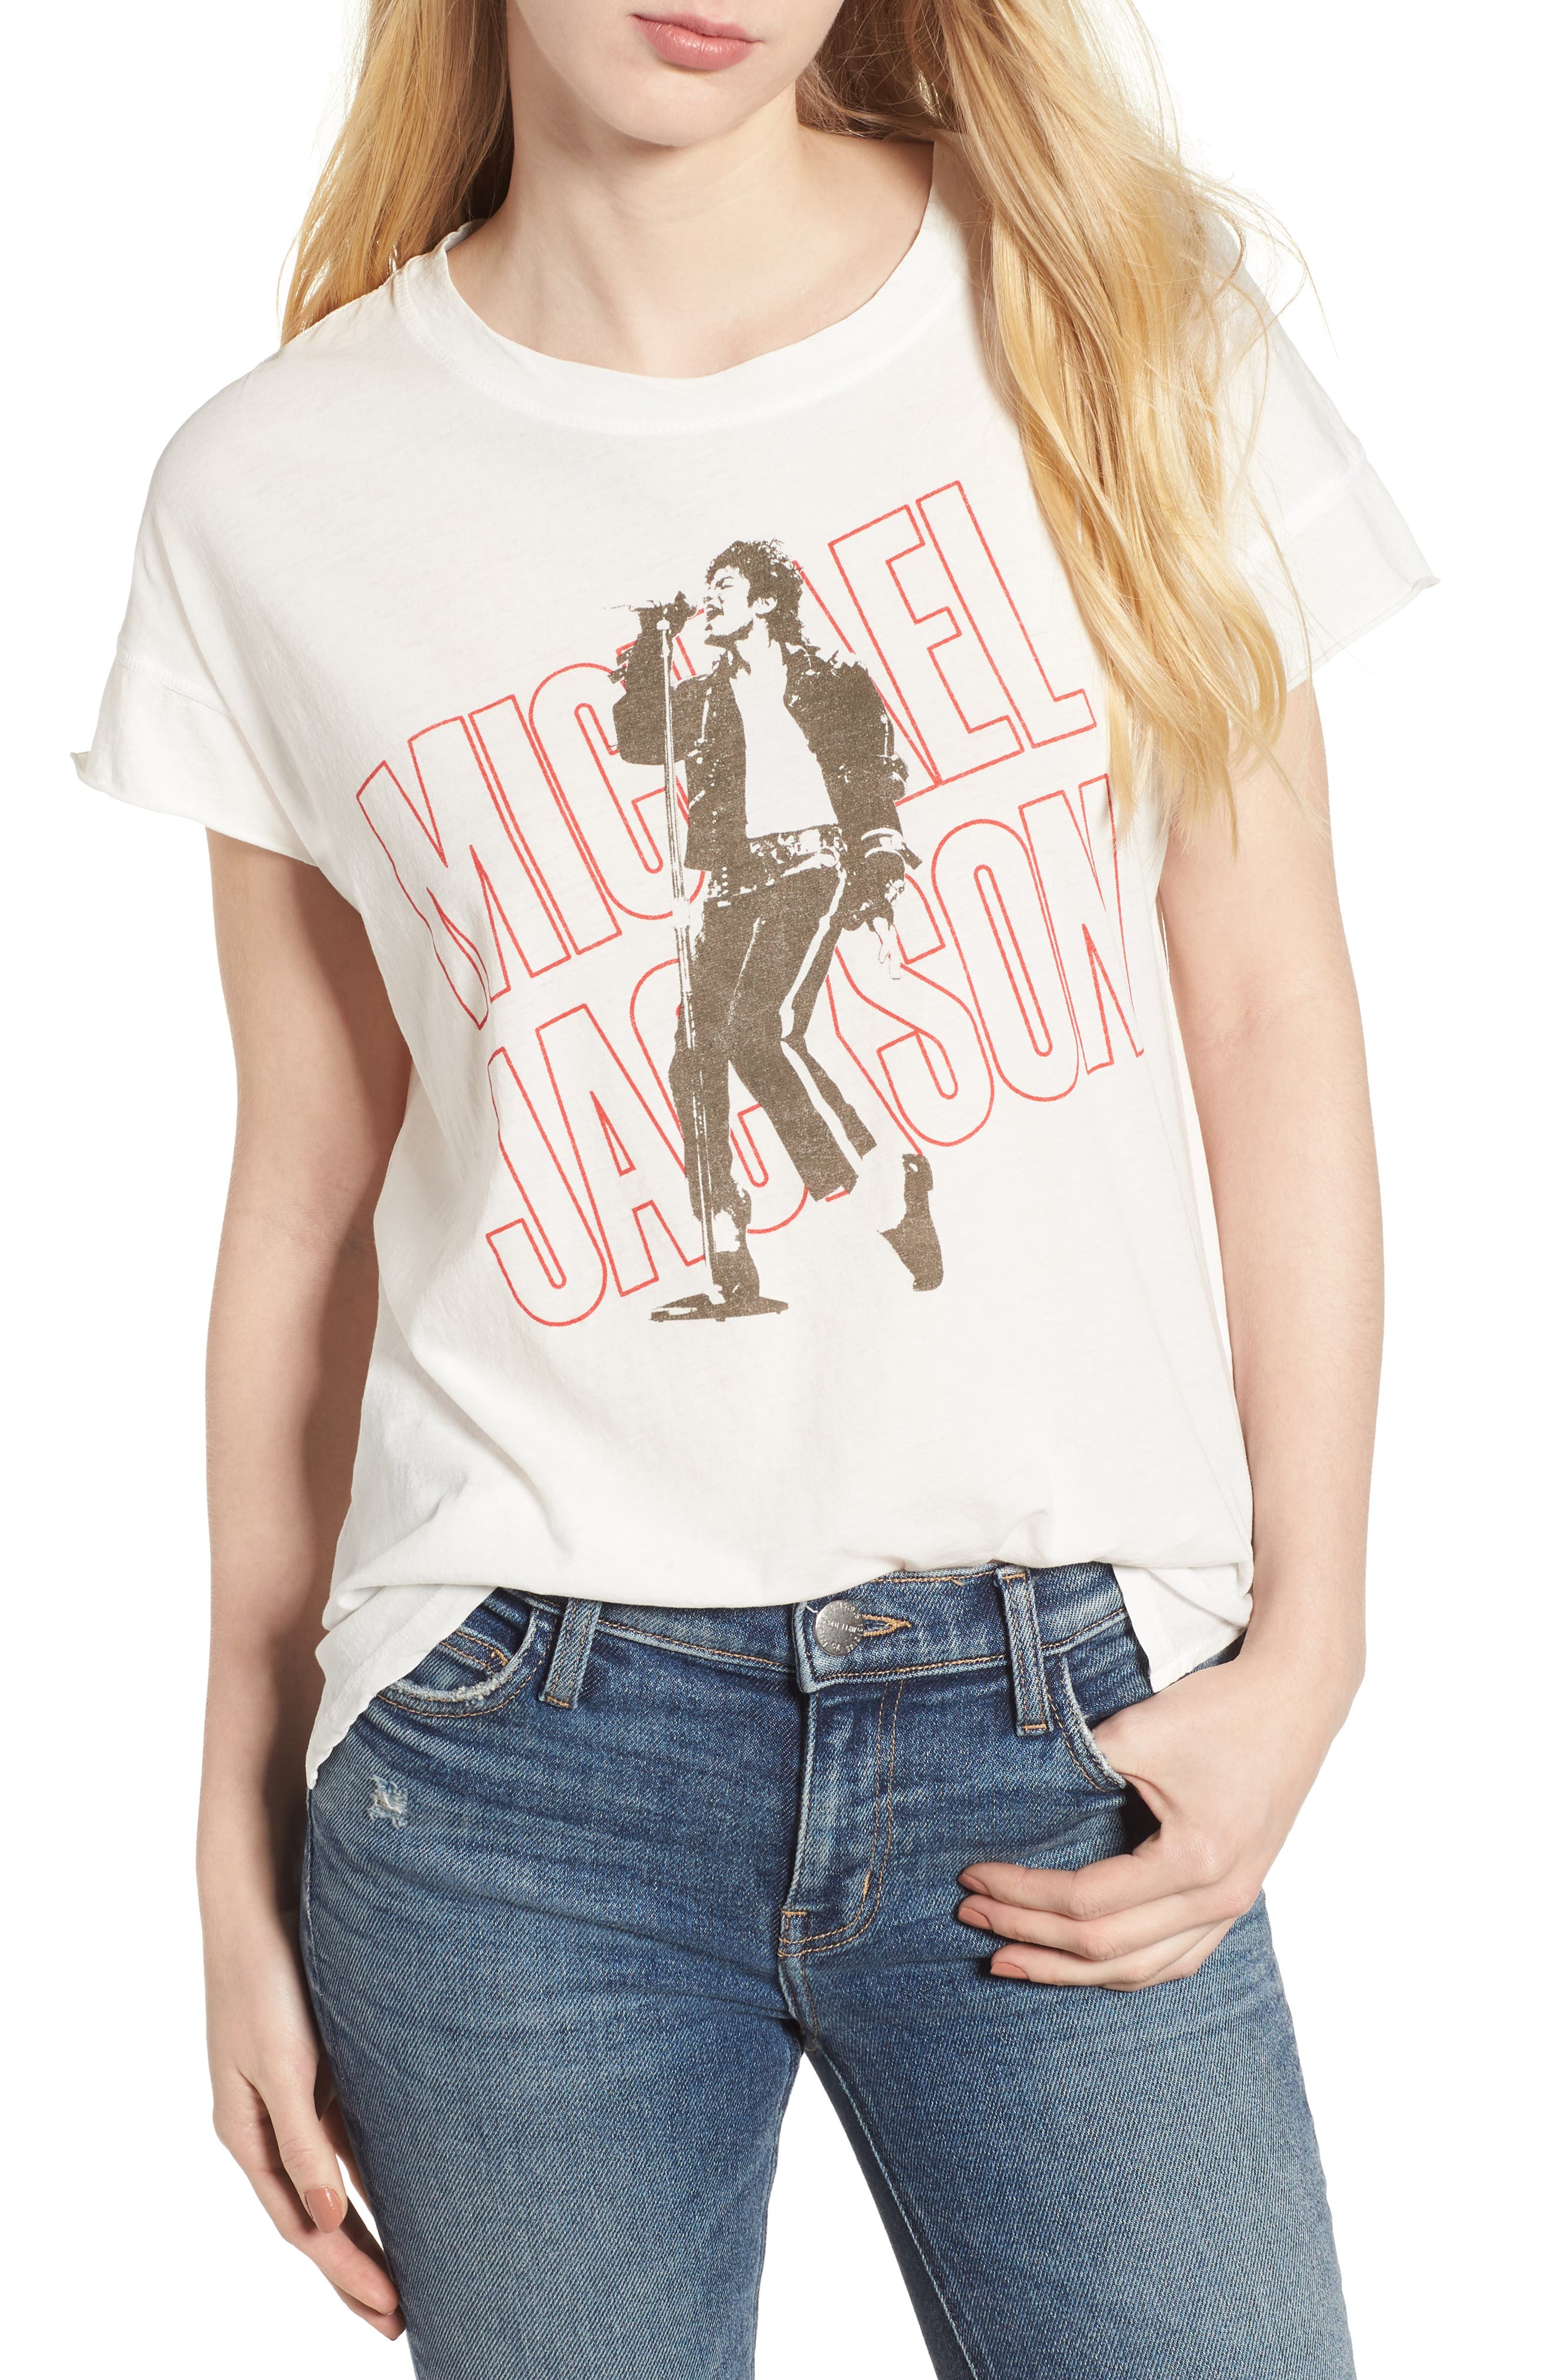 Michael Jackson Tee,                         Main,                         color, Vintage White